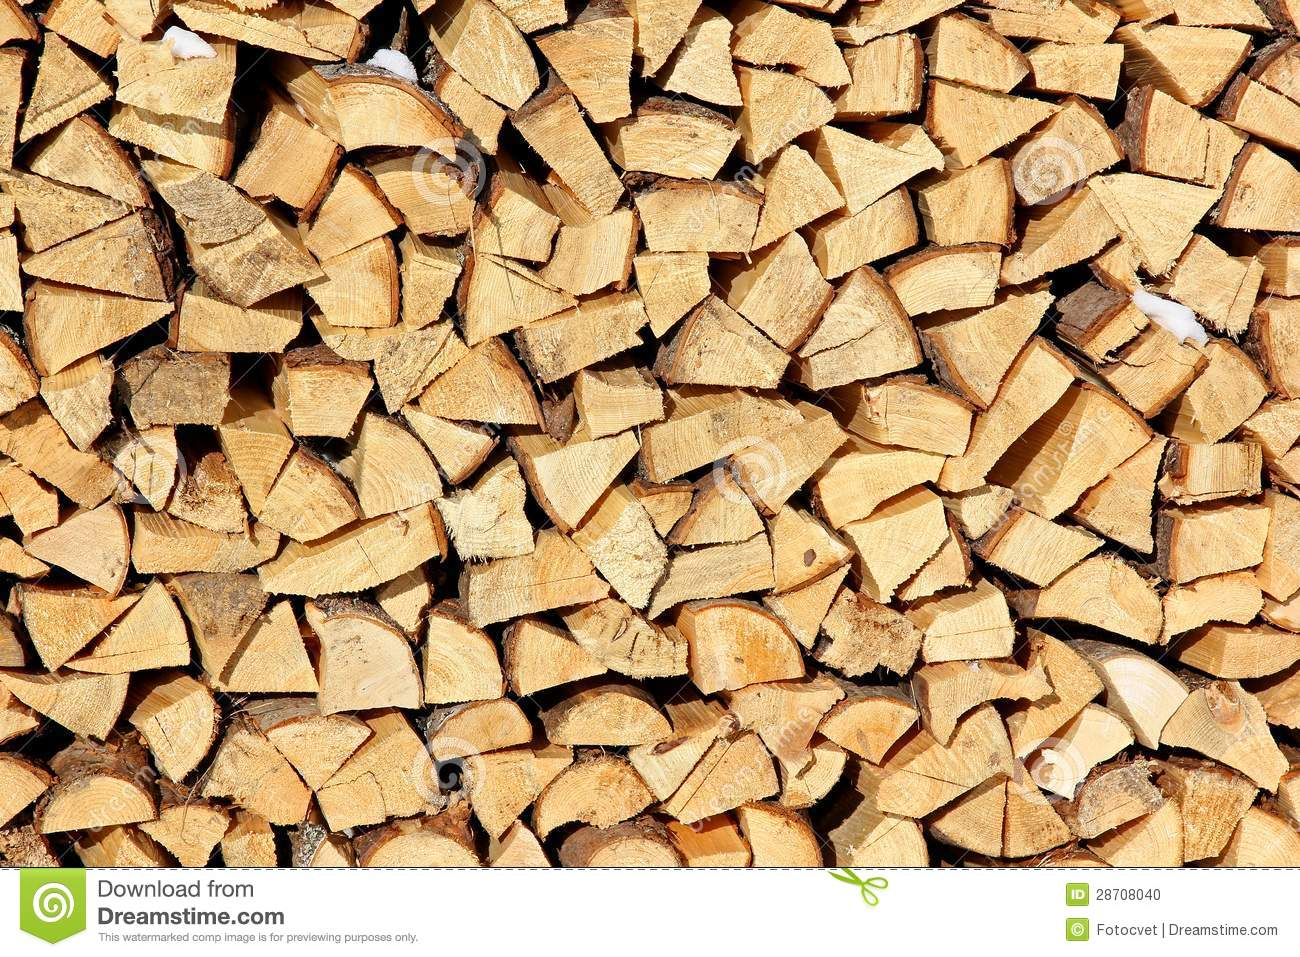 Photo about Stock of firewood for a fireplace in the is put on a backyard. Image of many